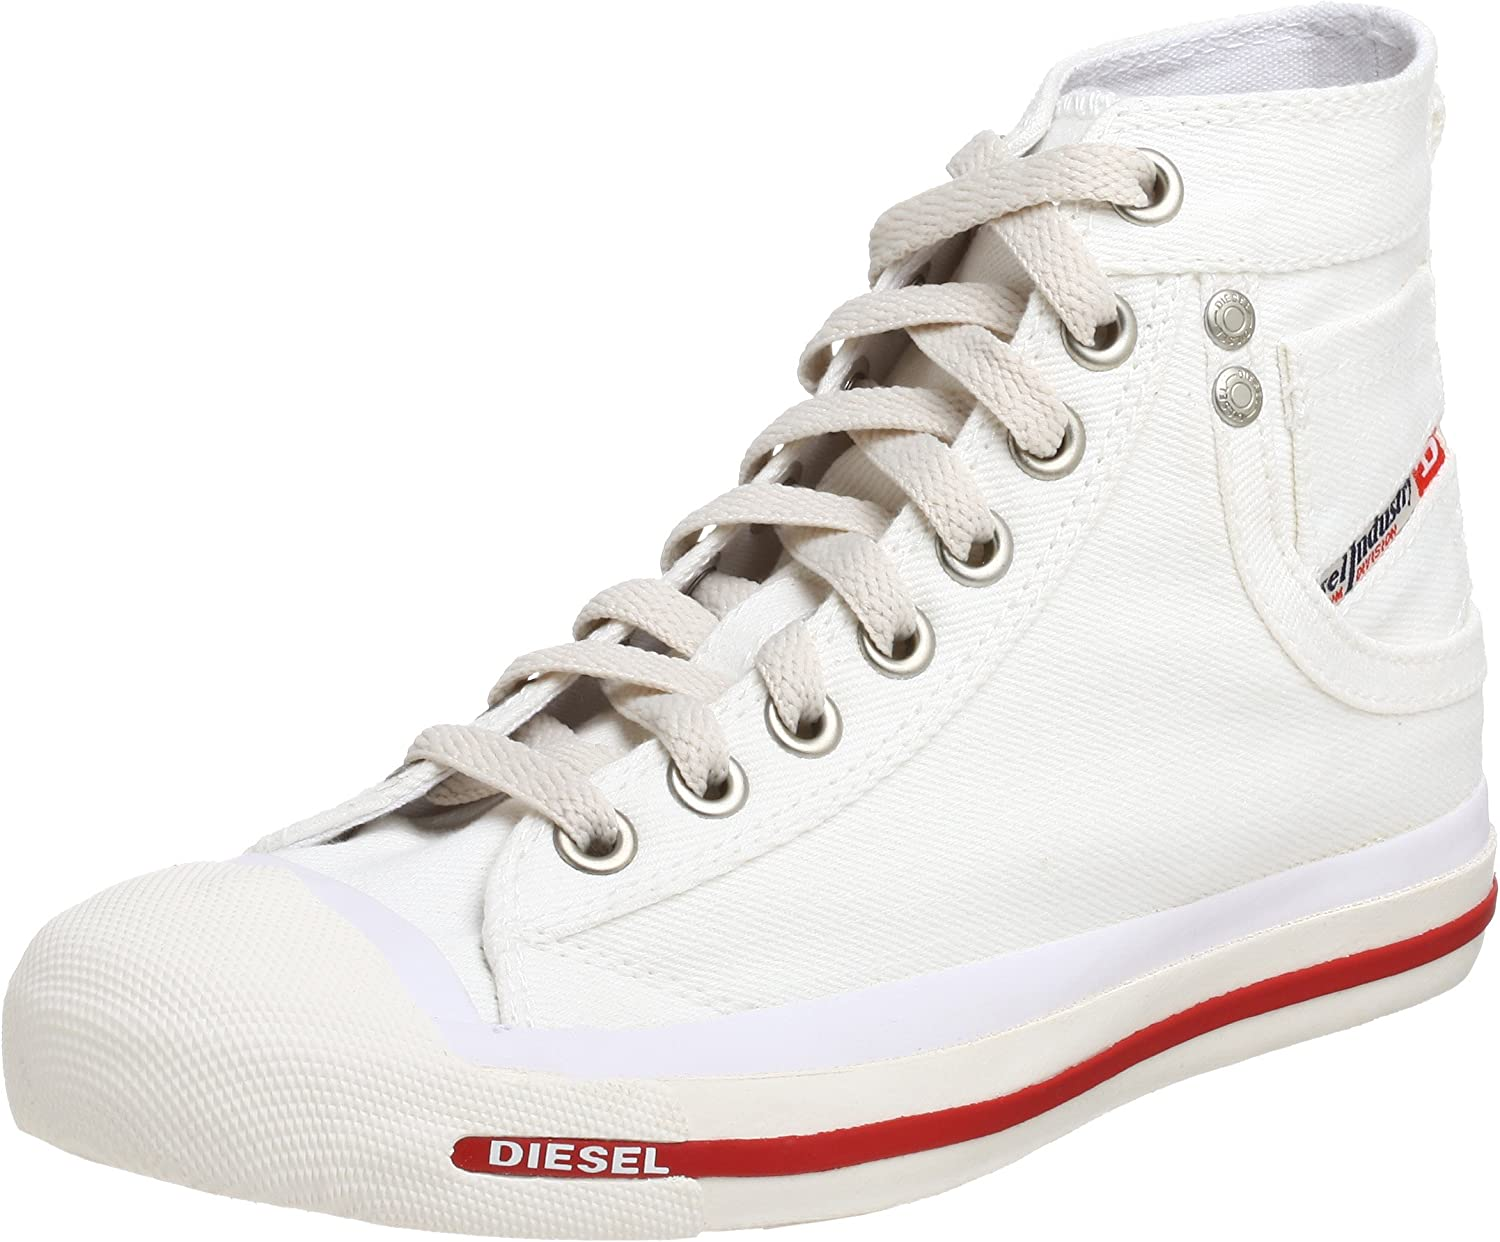 Diesel Women's Exposure Save money Lace-up Sneaker M White US Some reservation Bright 6.5